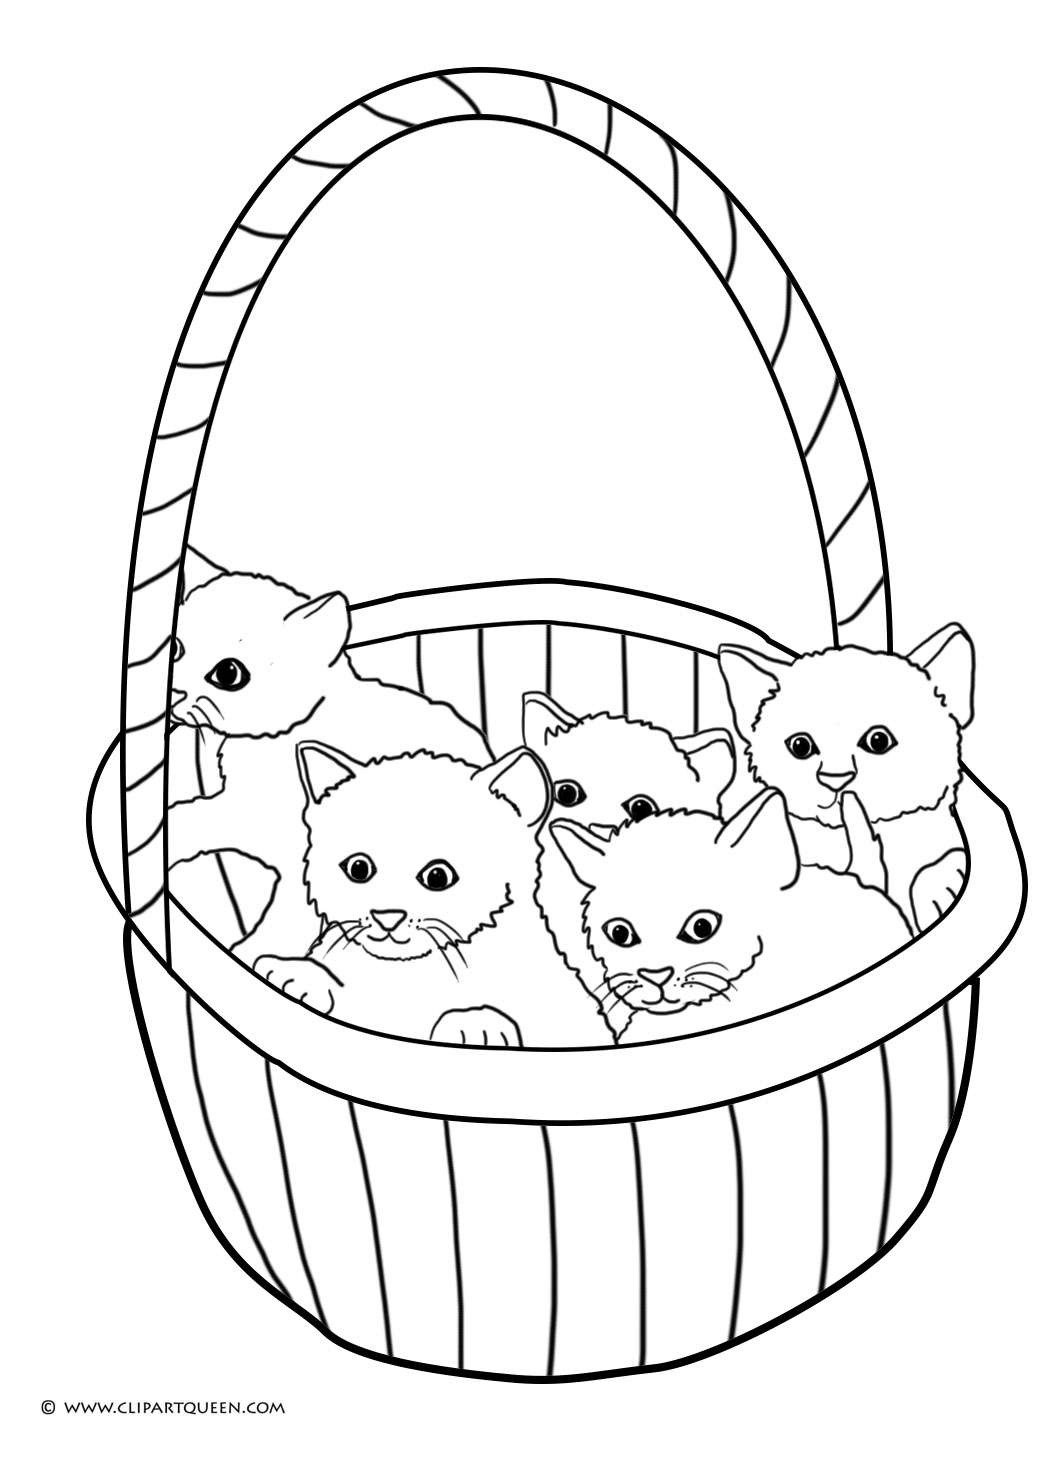 kids coloring pages kitten free printable cat coloring pages for kids kids coloring pages kitten